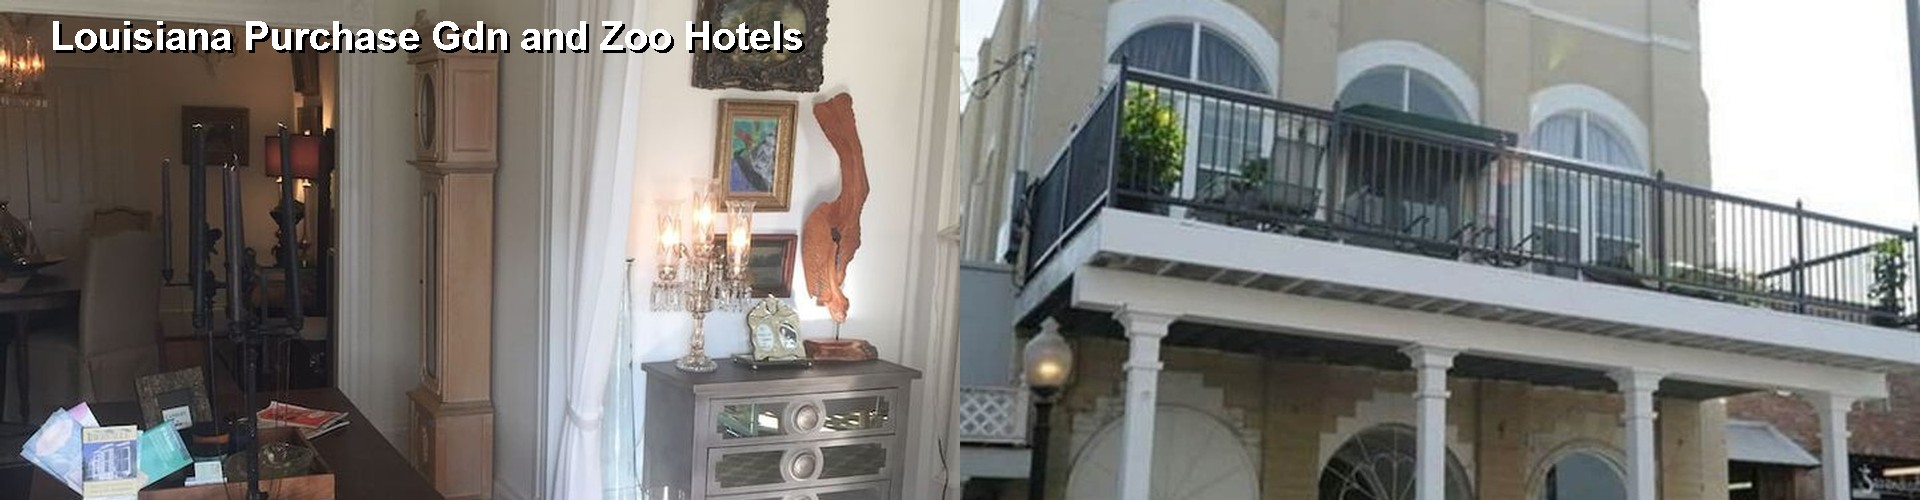 5 Best Hotels near Louisiana Purchase Gdn and Zoo